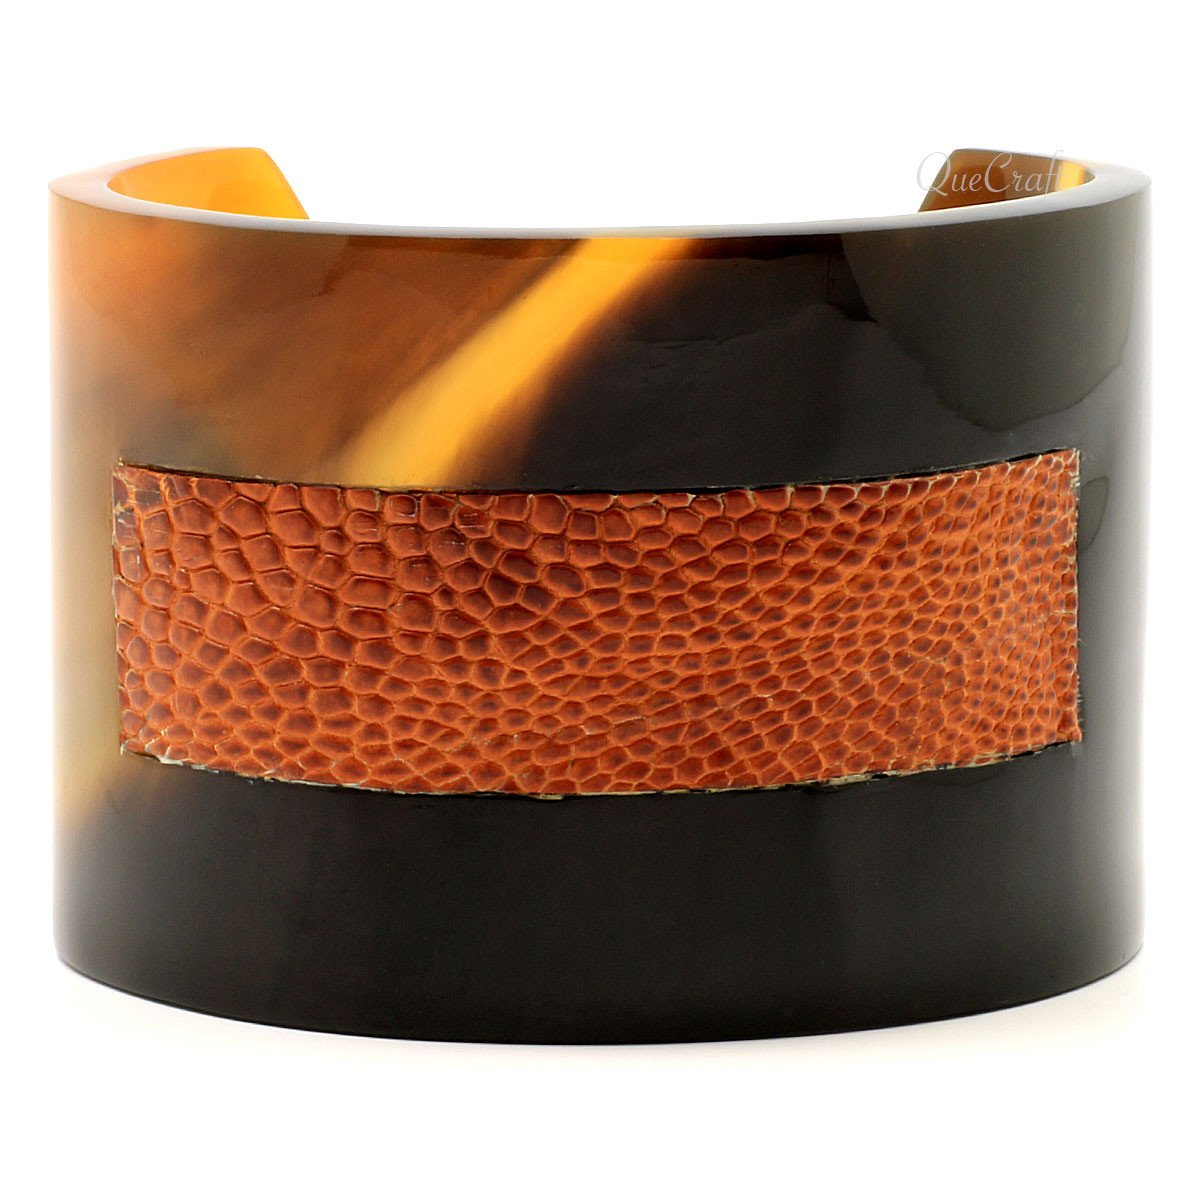 Horn & Leather Cuff Bracelet #6693 - HORN.JEWELRY by QueCraft